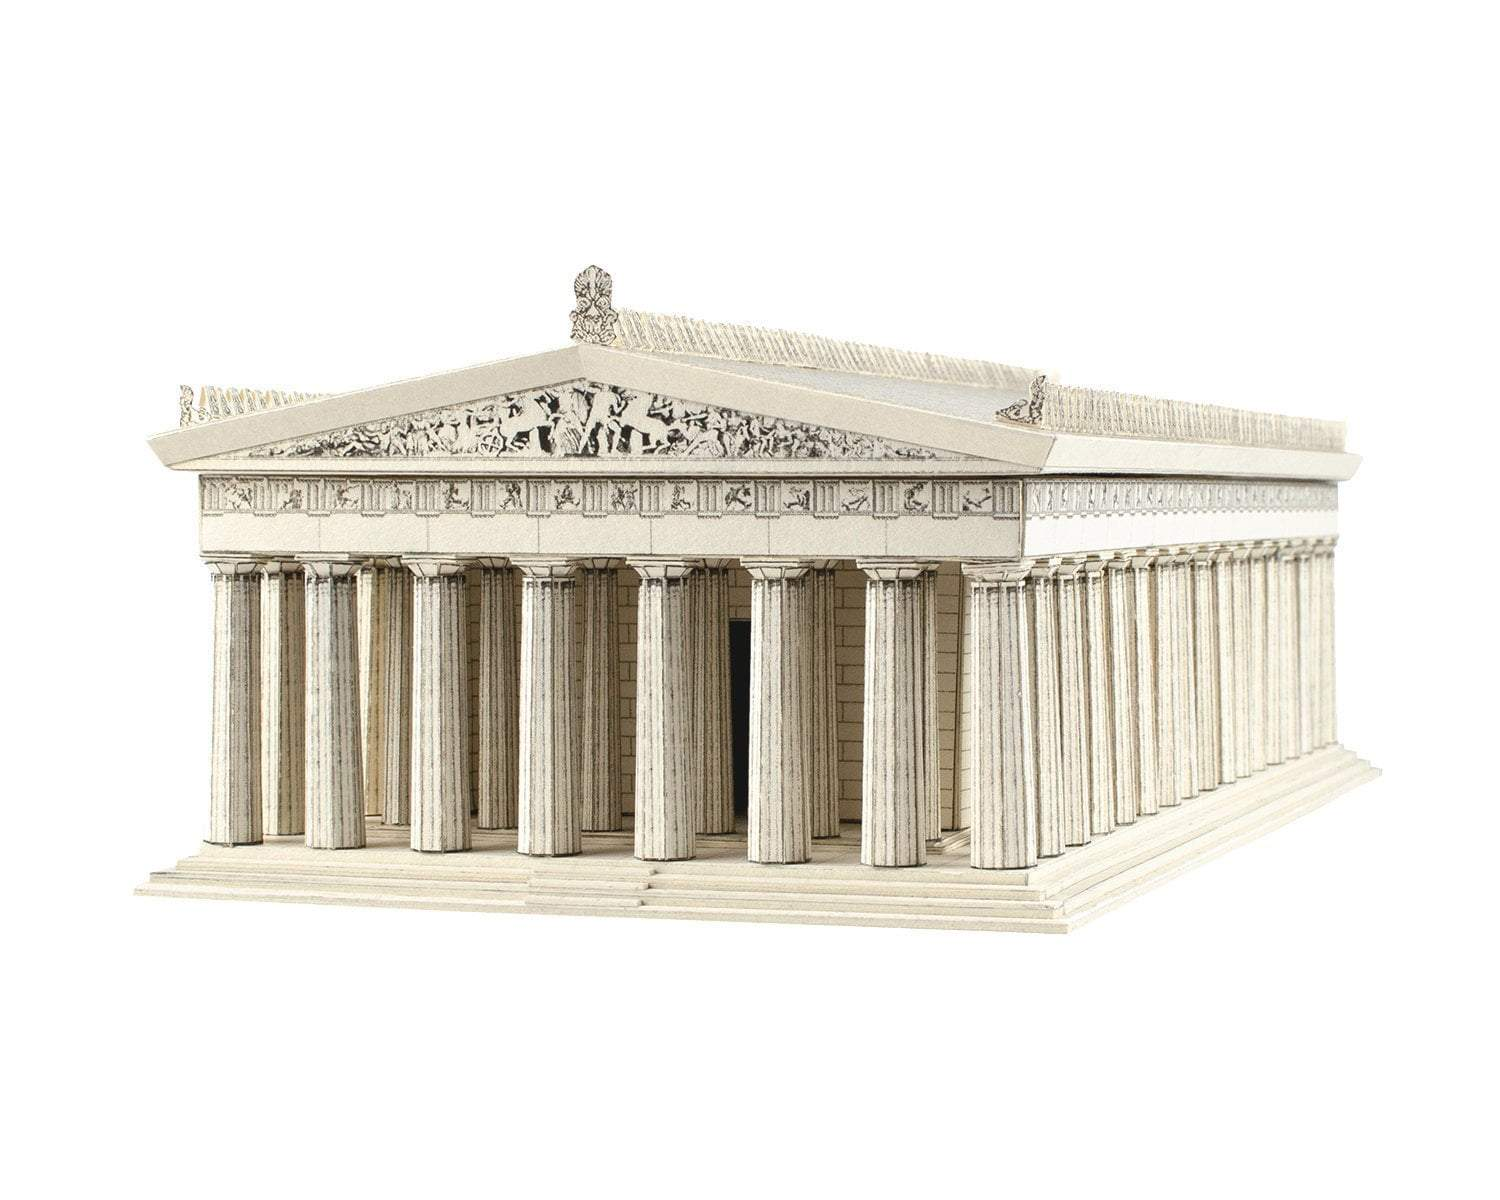 THE PARTHENON Architecture Paper Model Kit Ancient Greek Temple Acropolis Athens Greece School Supplies